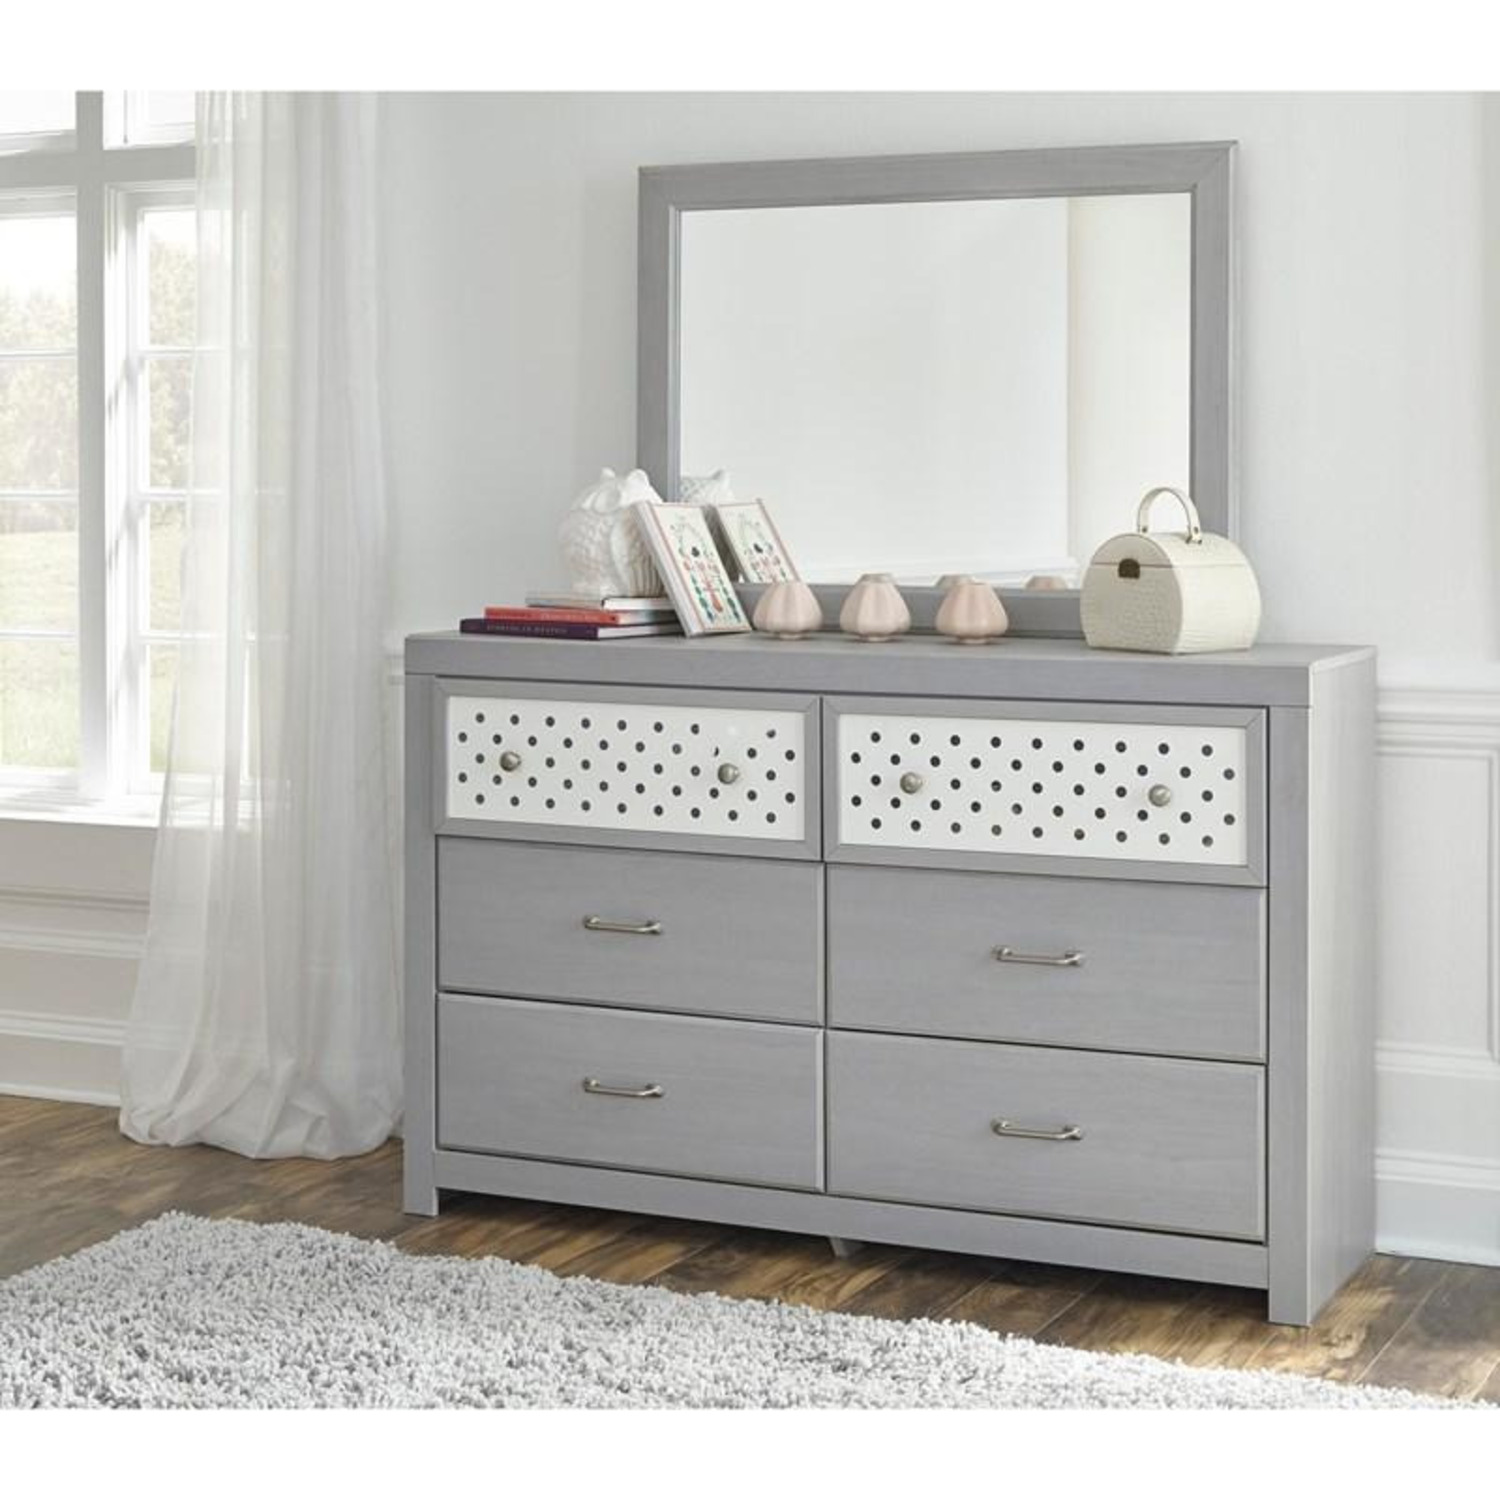 Arcella 6 Drawers Kids Dressers - image-2